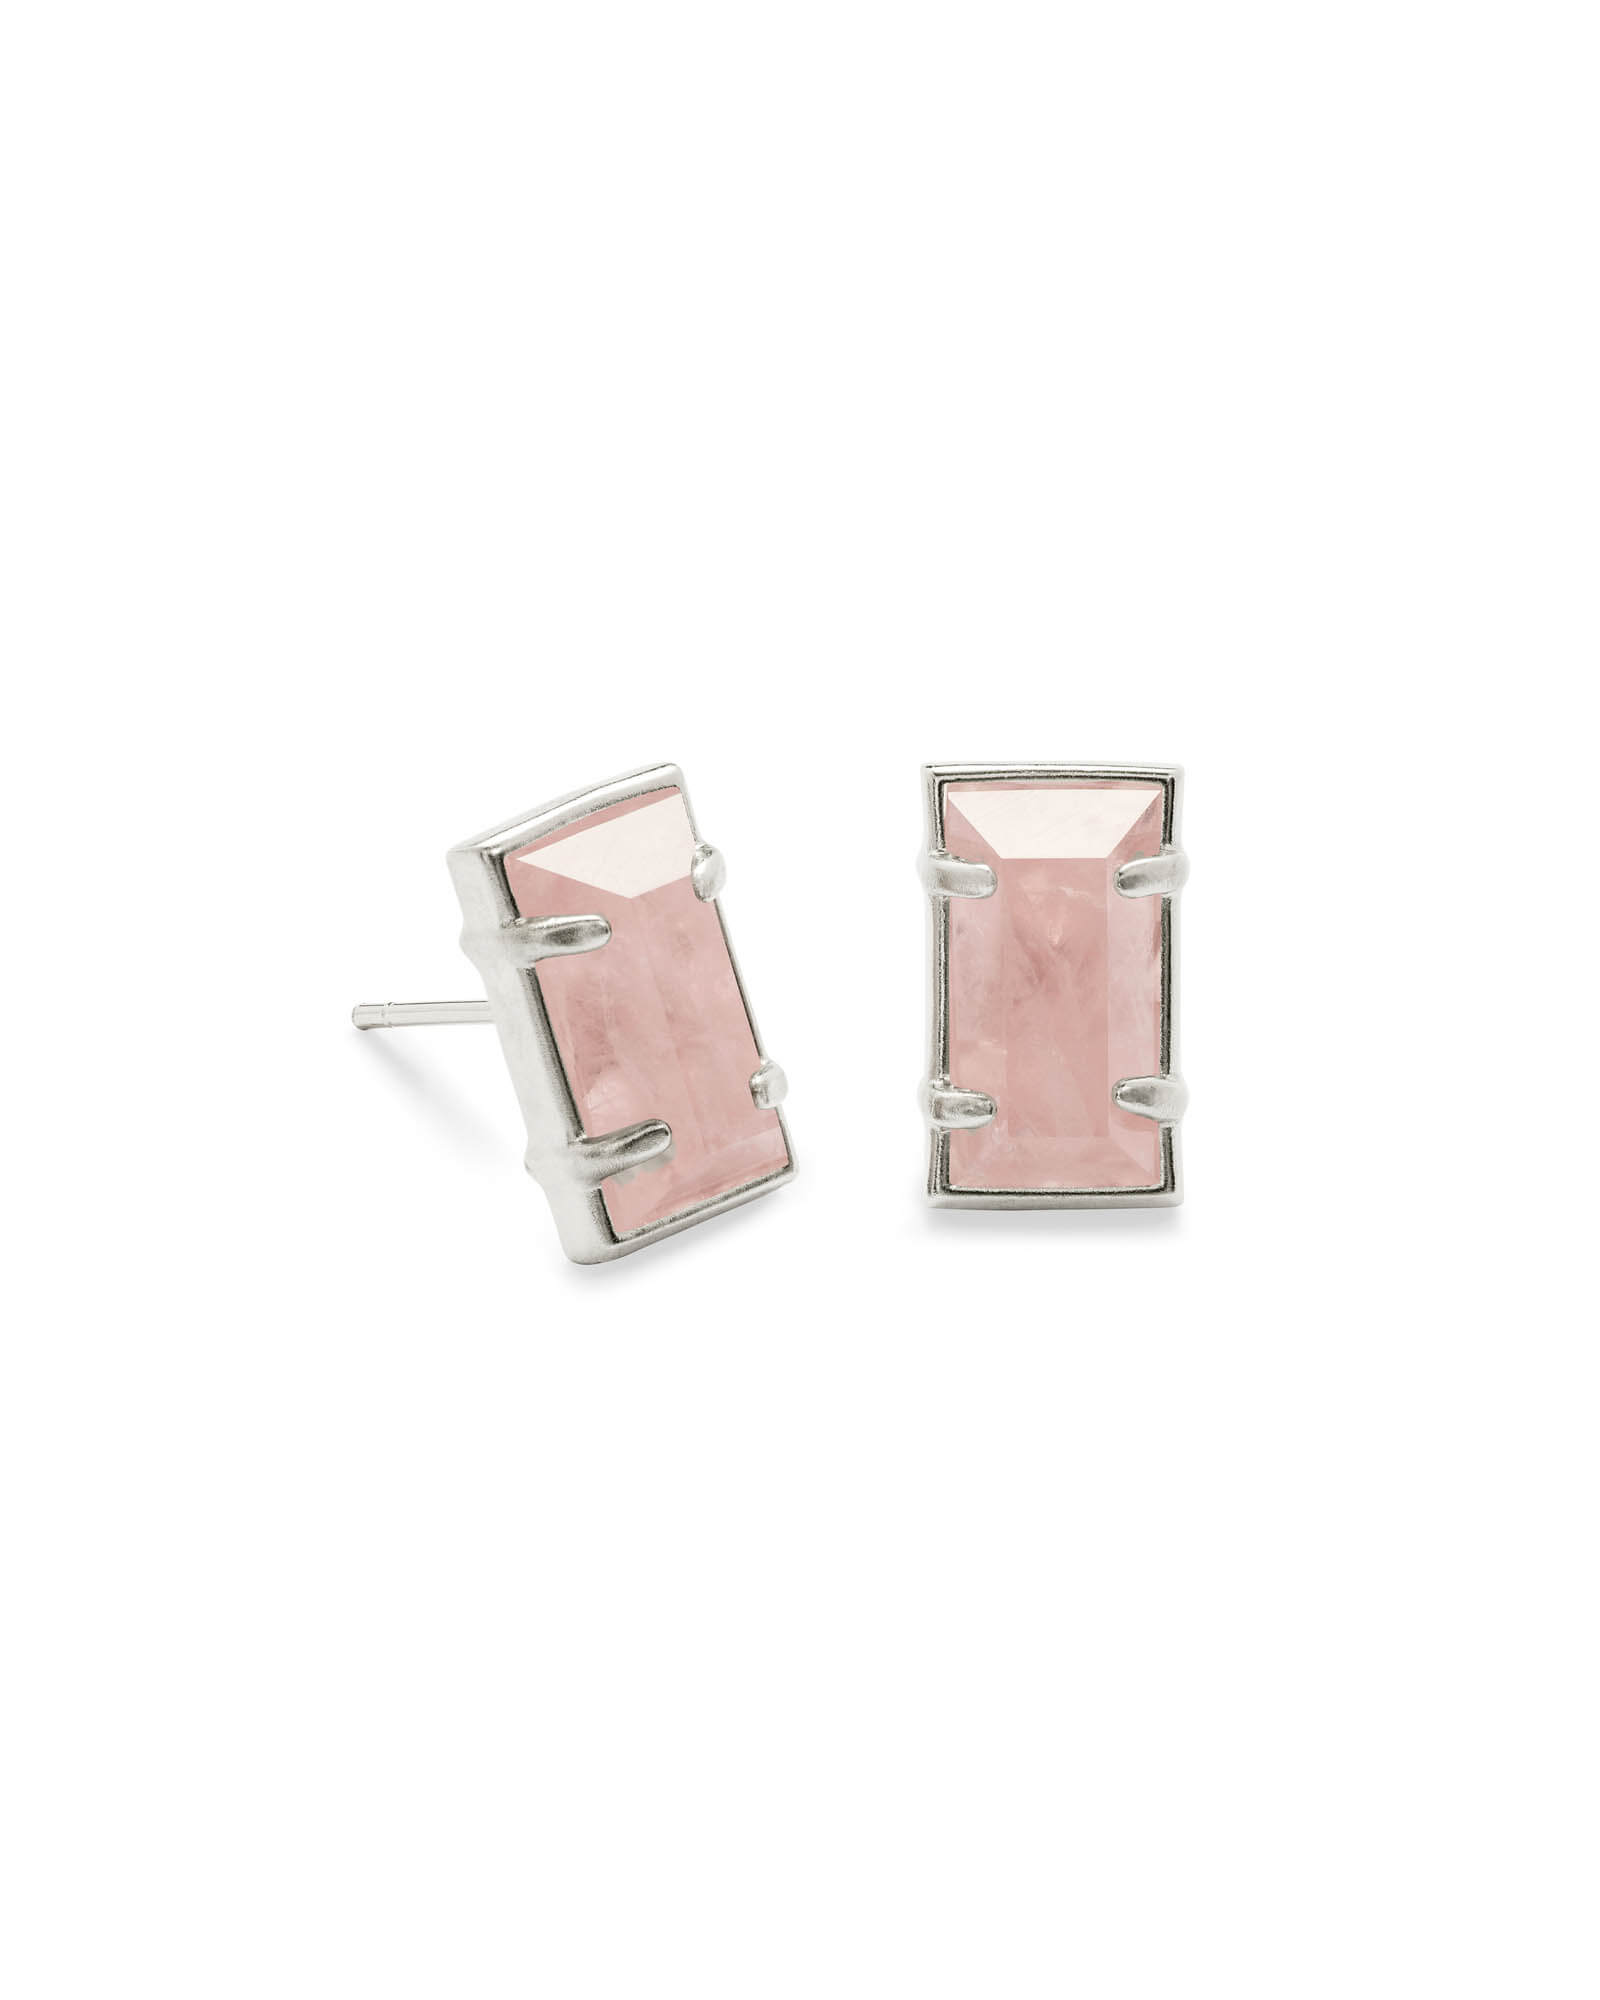 Paola Silver Stud Earrings in Rose Quartz